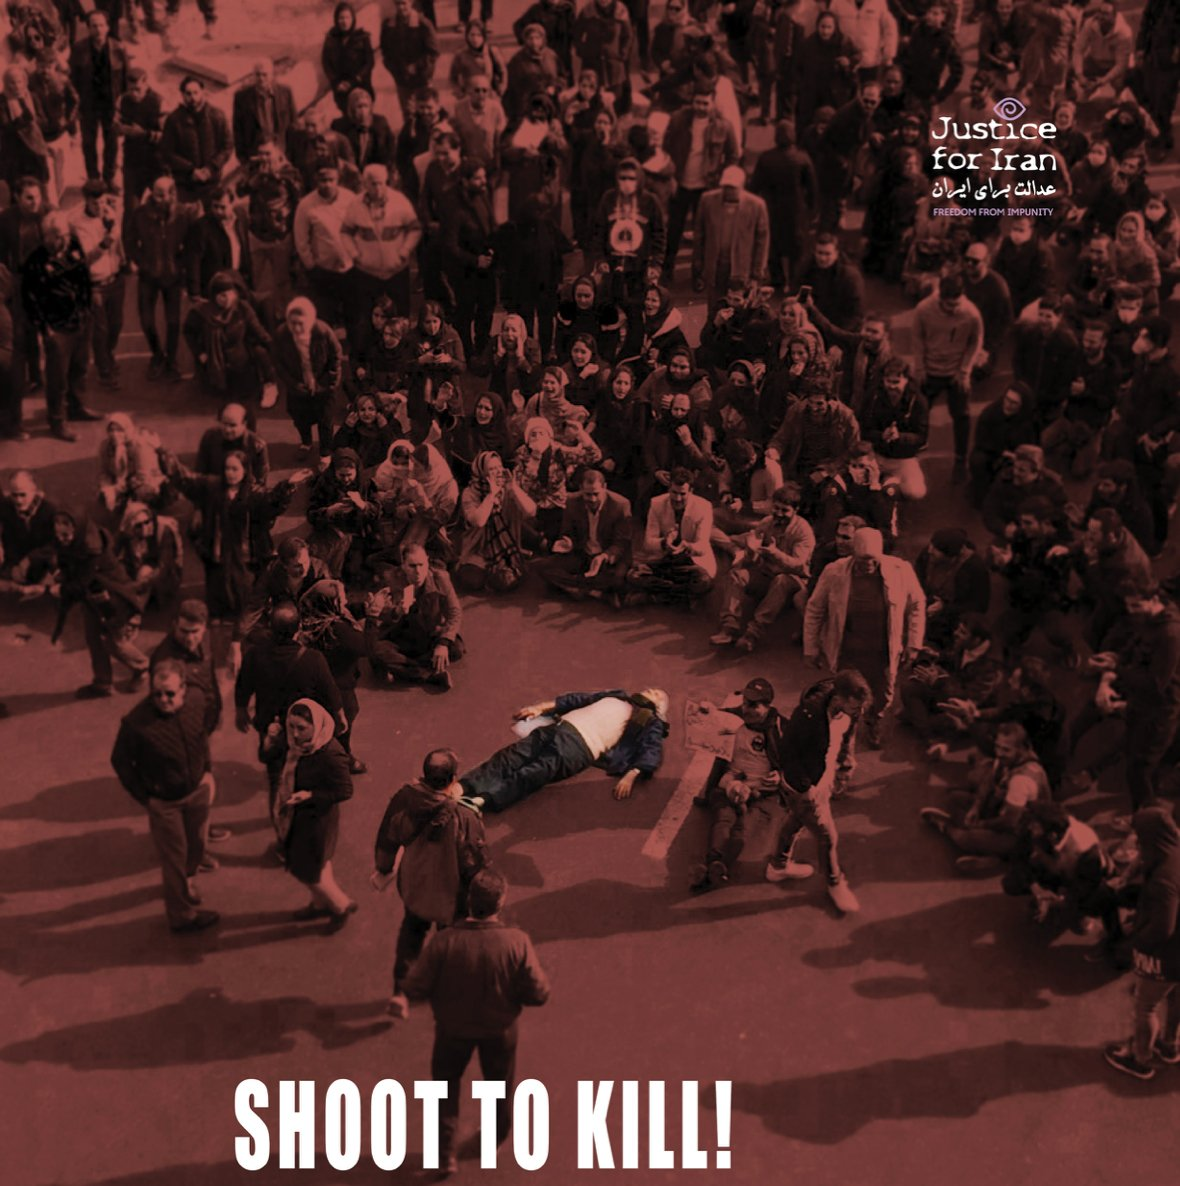 Shoot to Kill; Preliminary Findings of Justice for Iran's Investigation into the November 2019 Protests